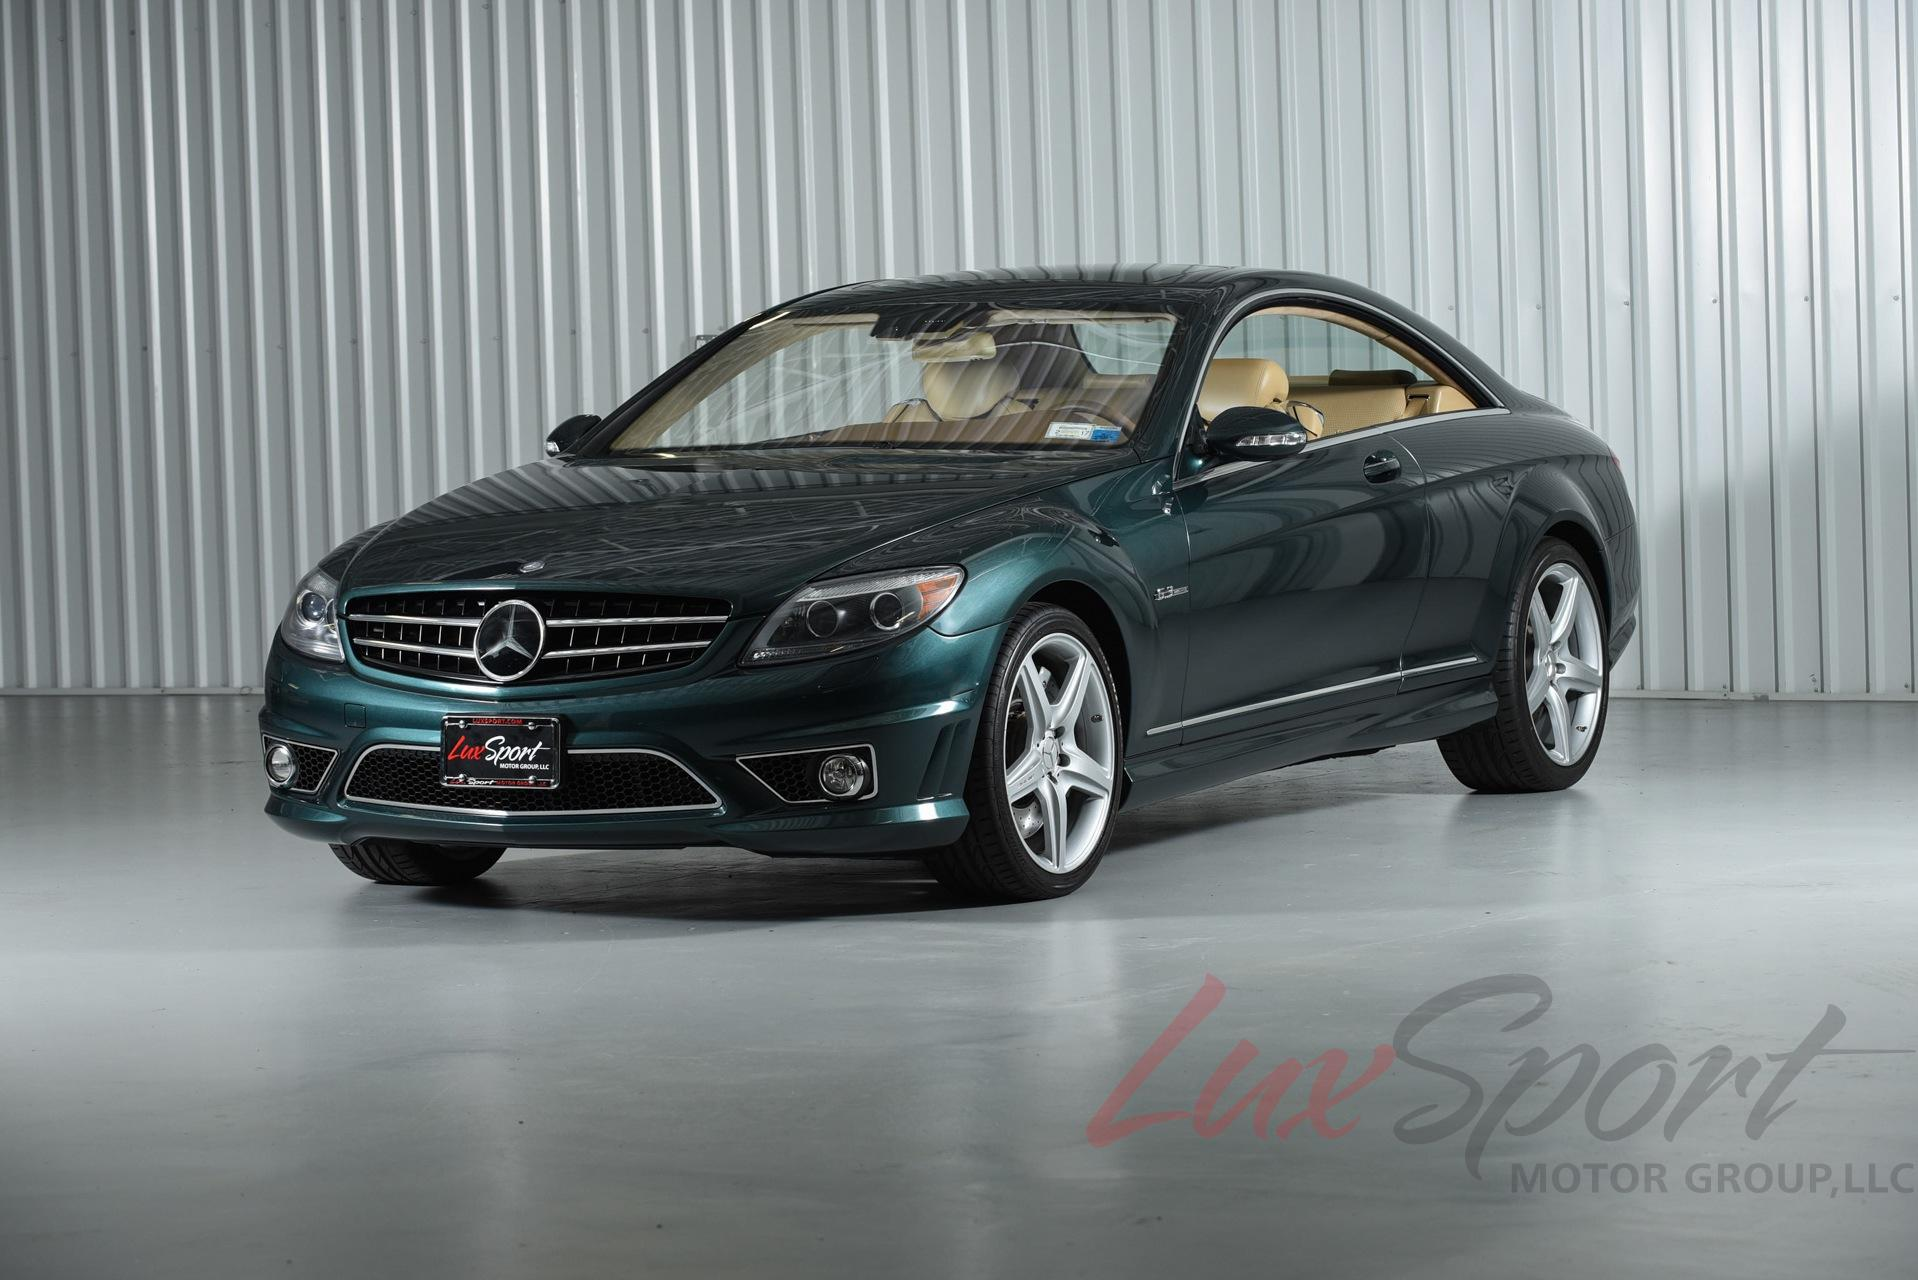 Used 2008 Mercedes-Benz CL63 AMG Coupe CL63 AMG | New Hyde Park, NY